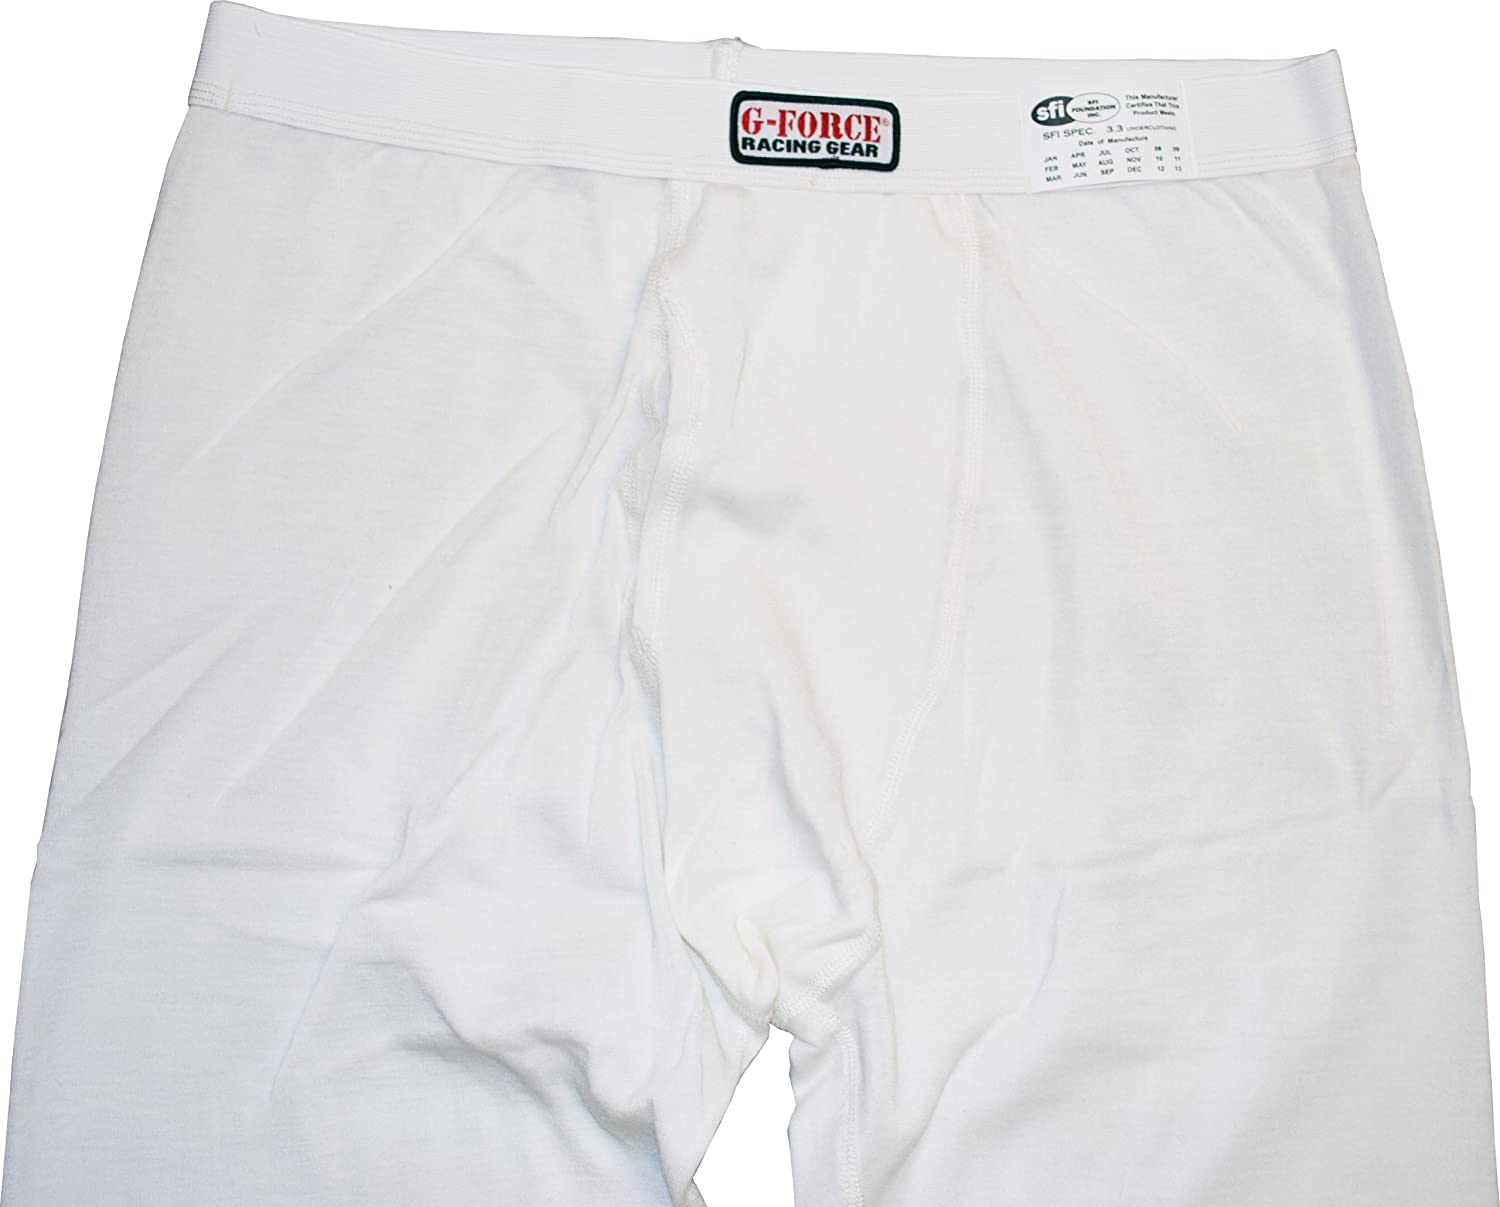 G-Force 4161MEDNT Medium Nomex Flame-Retardant Underwear Bottom